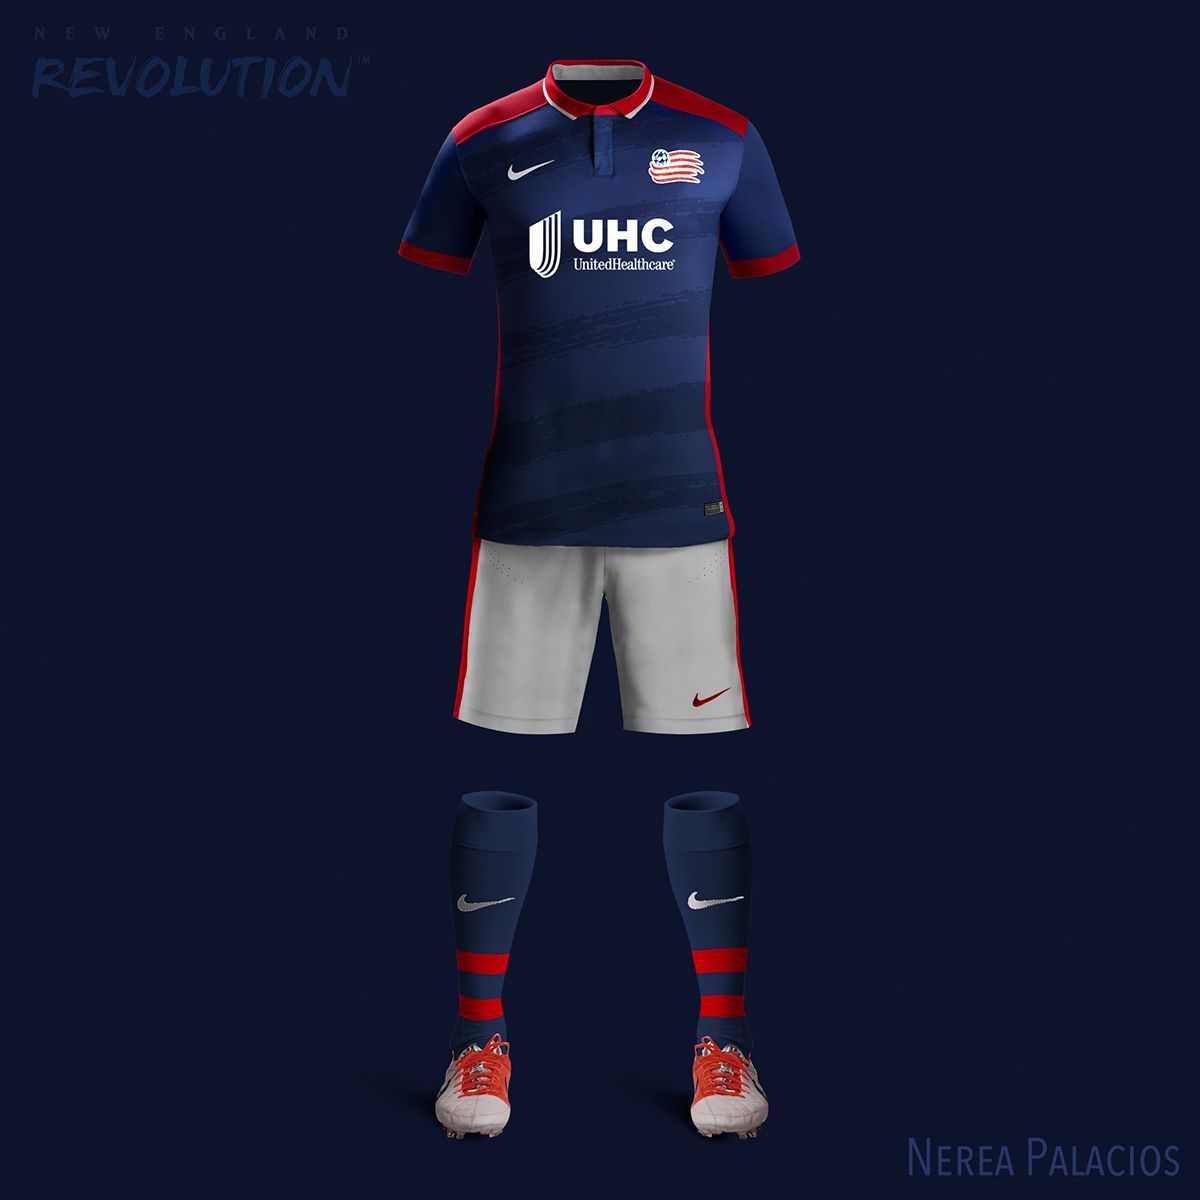 Pin By Nfs G On Jerseys In 2020 Soccer Shirts Soccer Tshirts New England Revolution